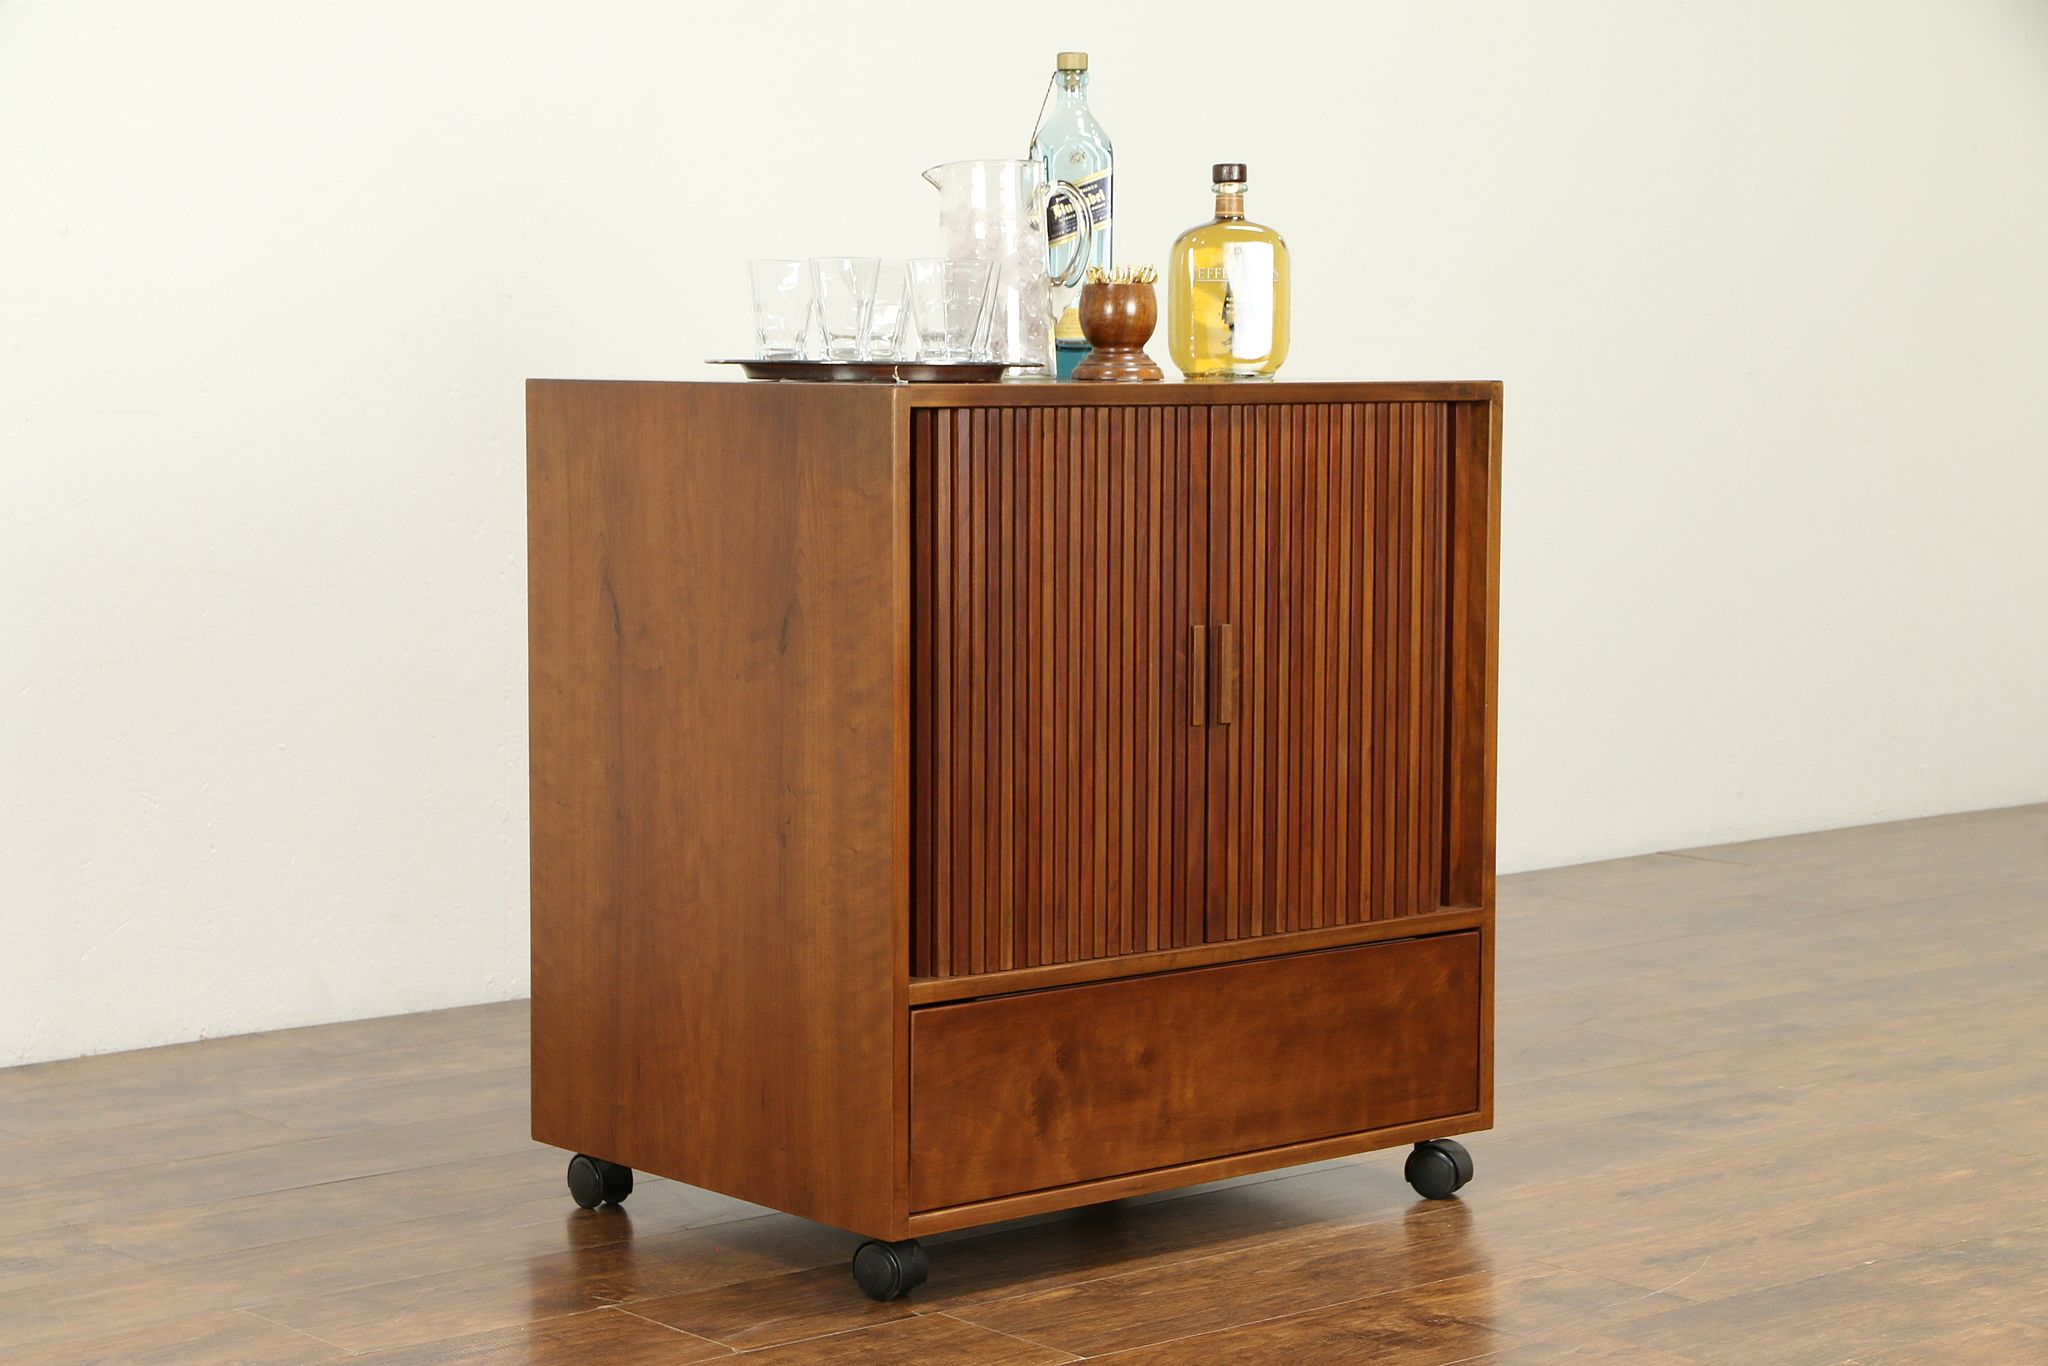 Sold Midcentury Modern Vintage Cherry Entertainment Bar Cabinet